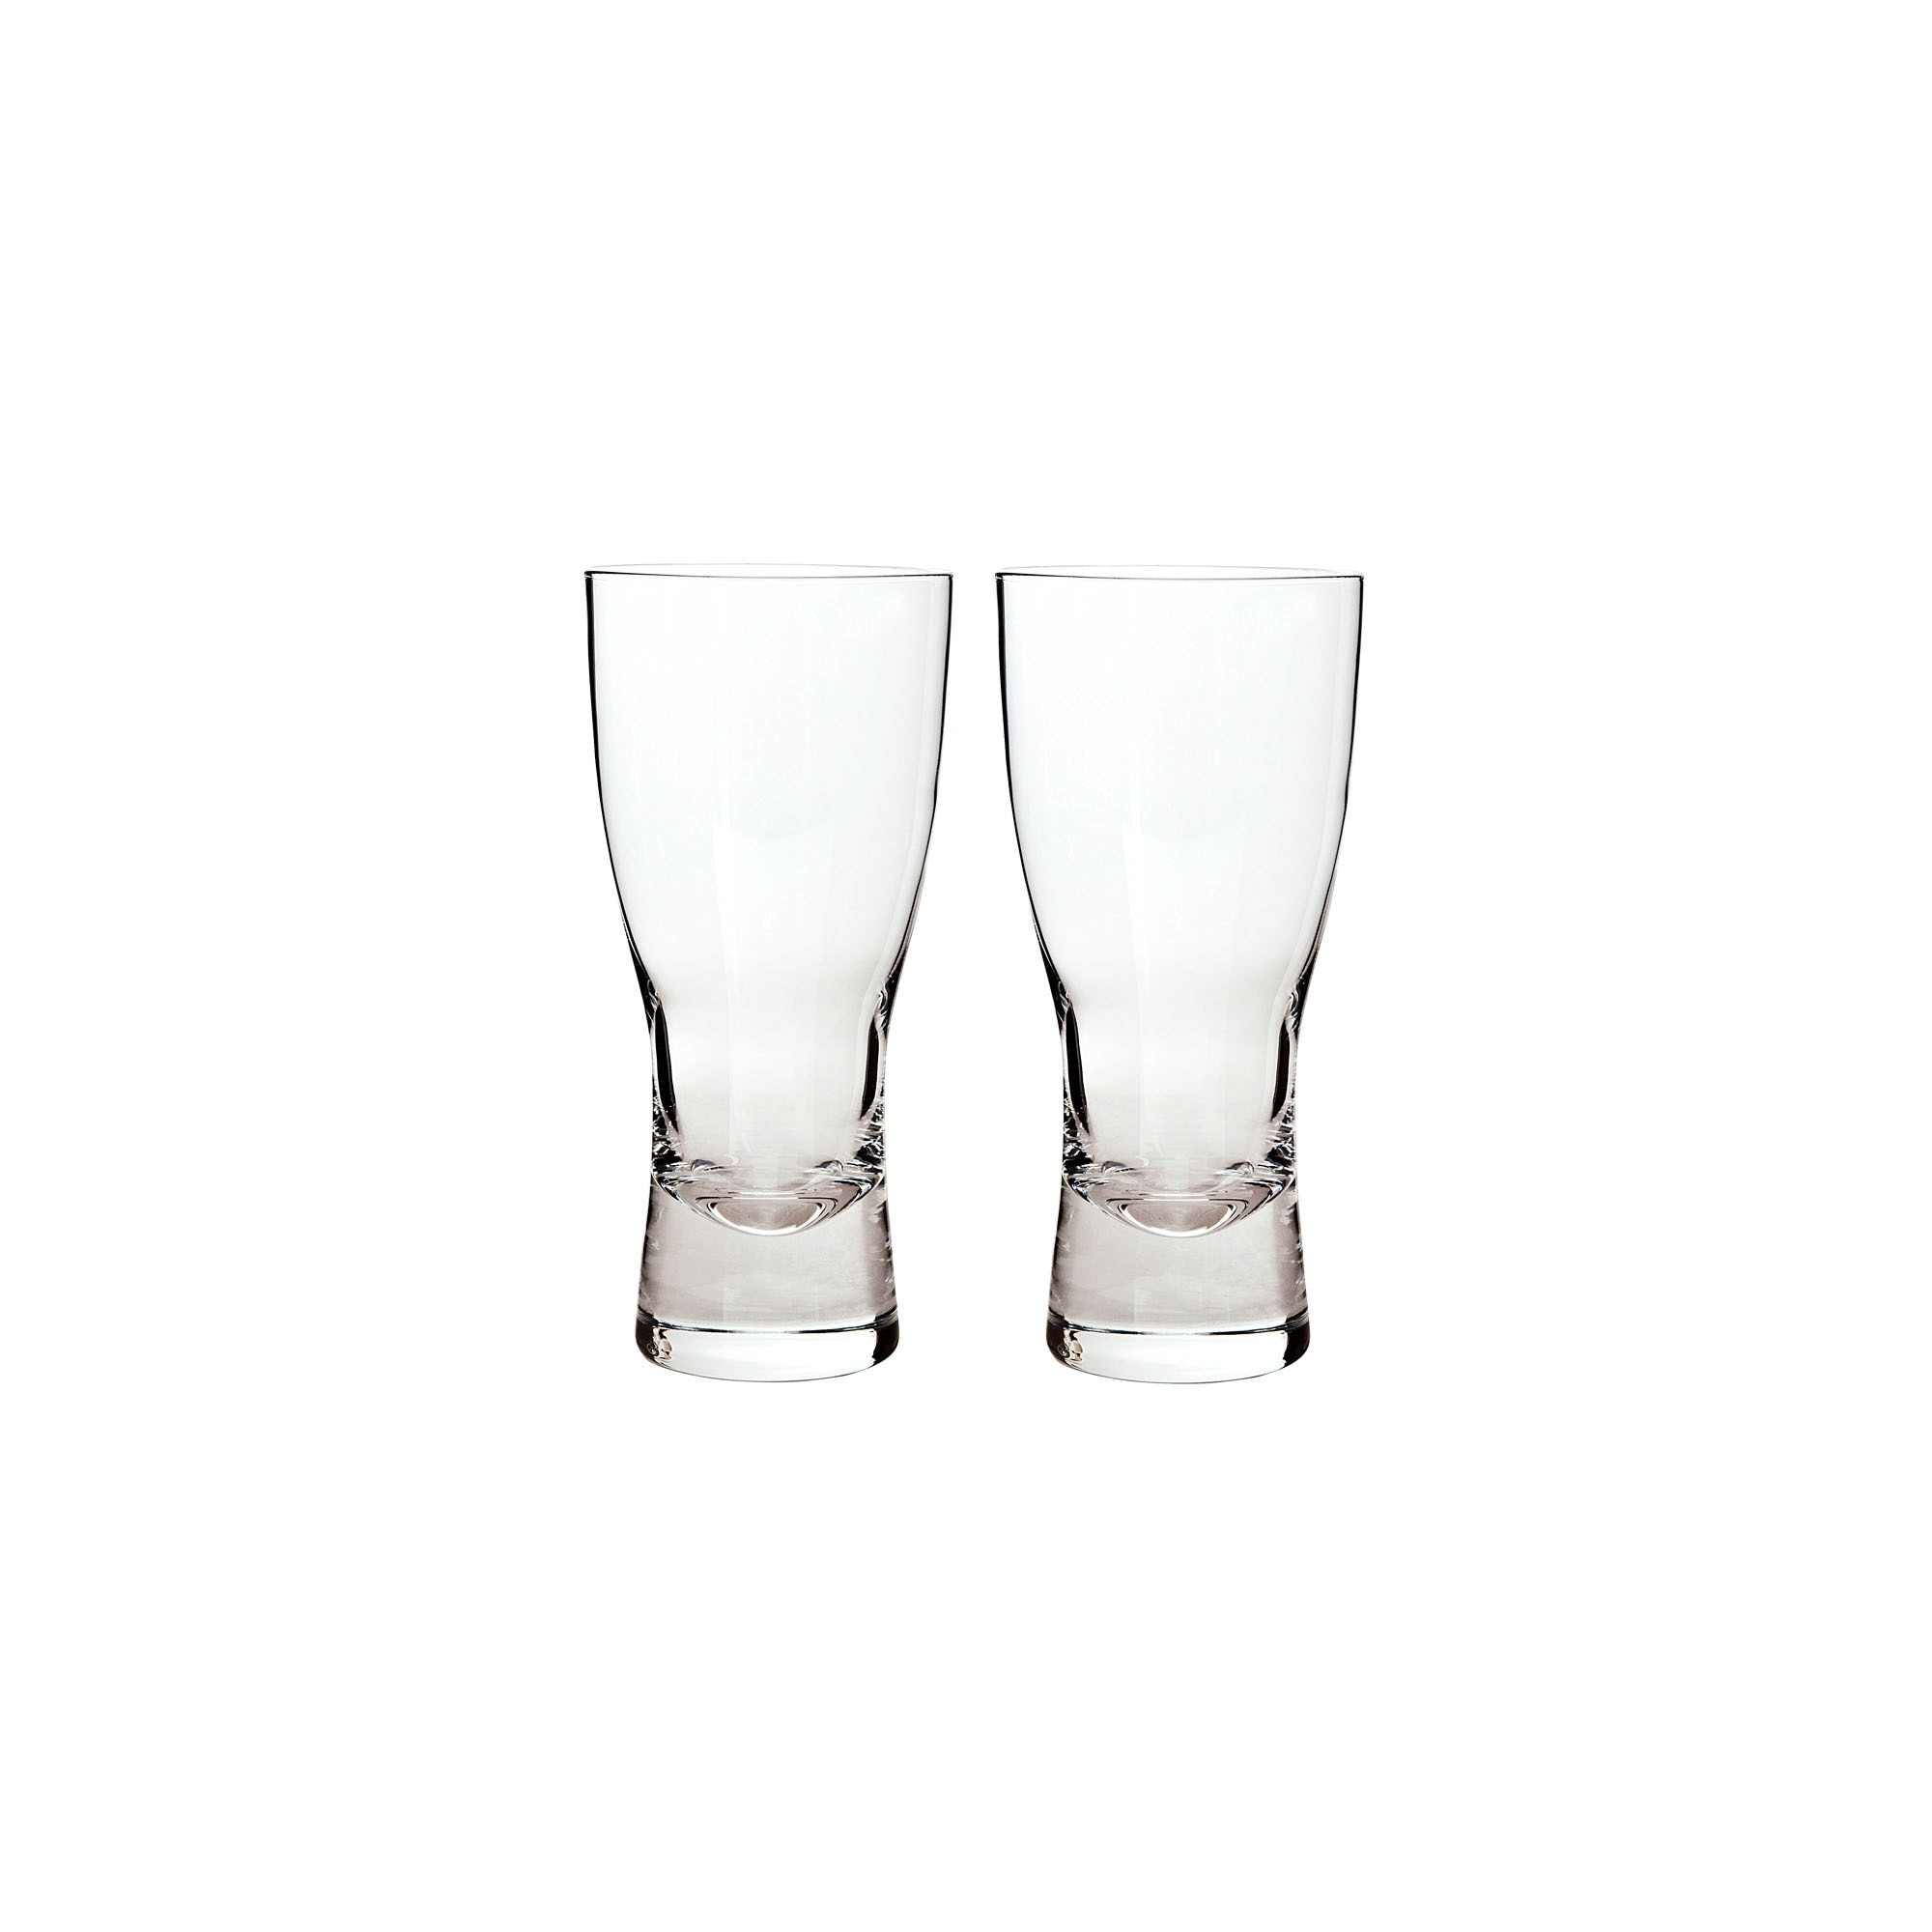 Compare prices for Denby China By Denby Large Tumbler Pack Of 2